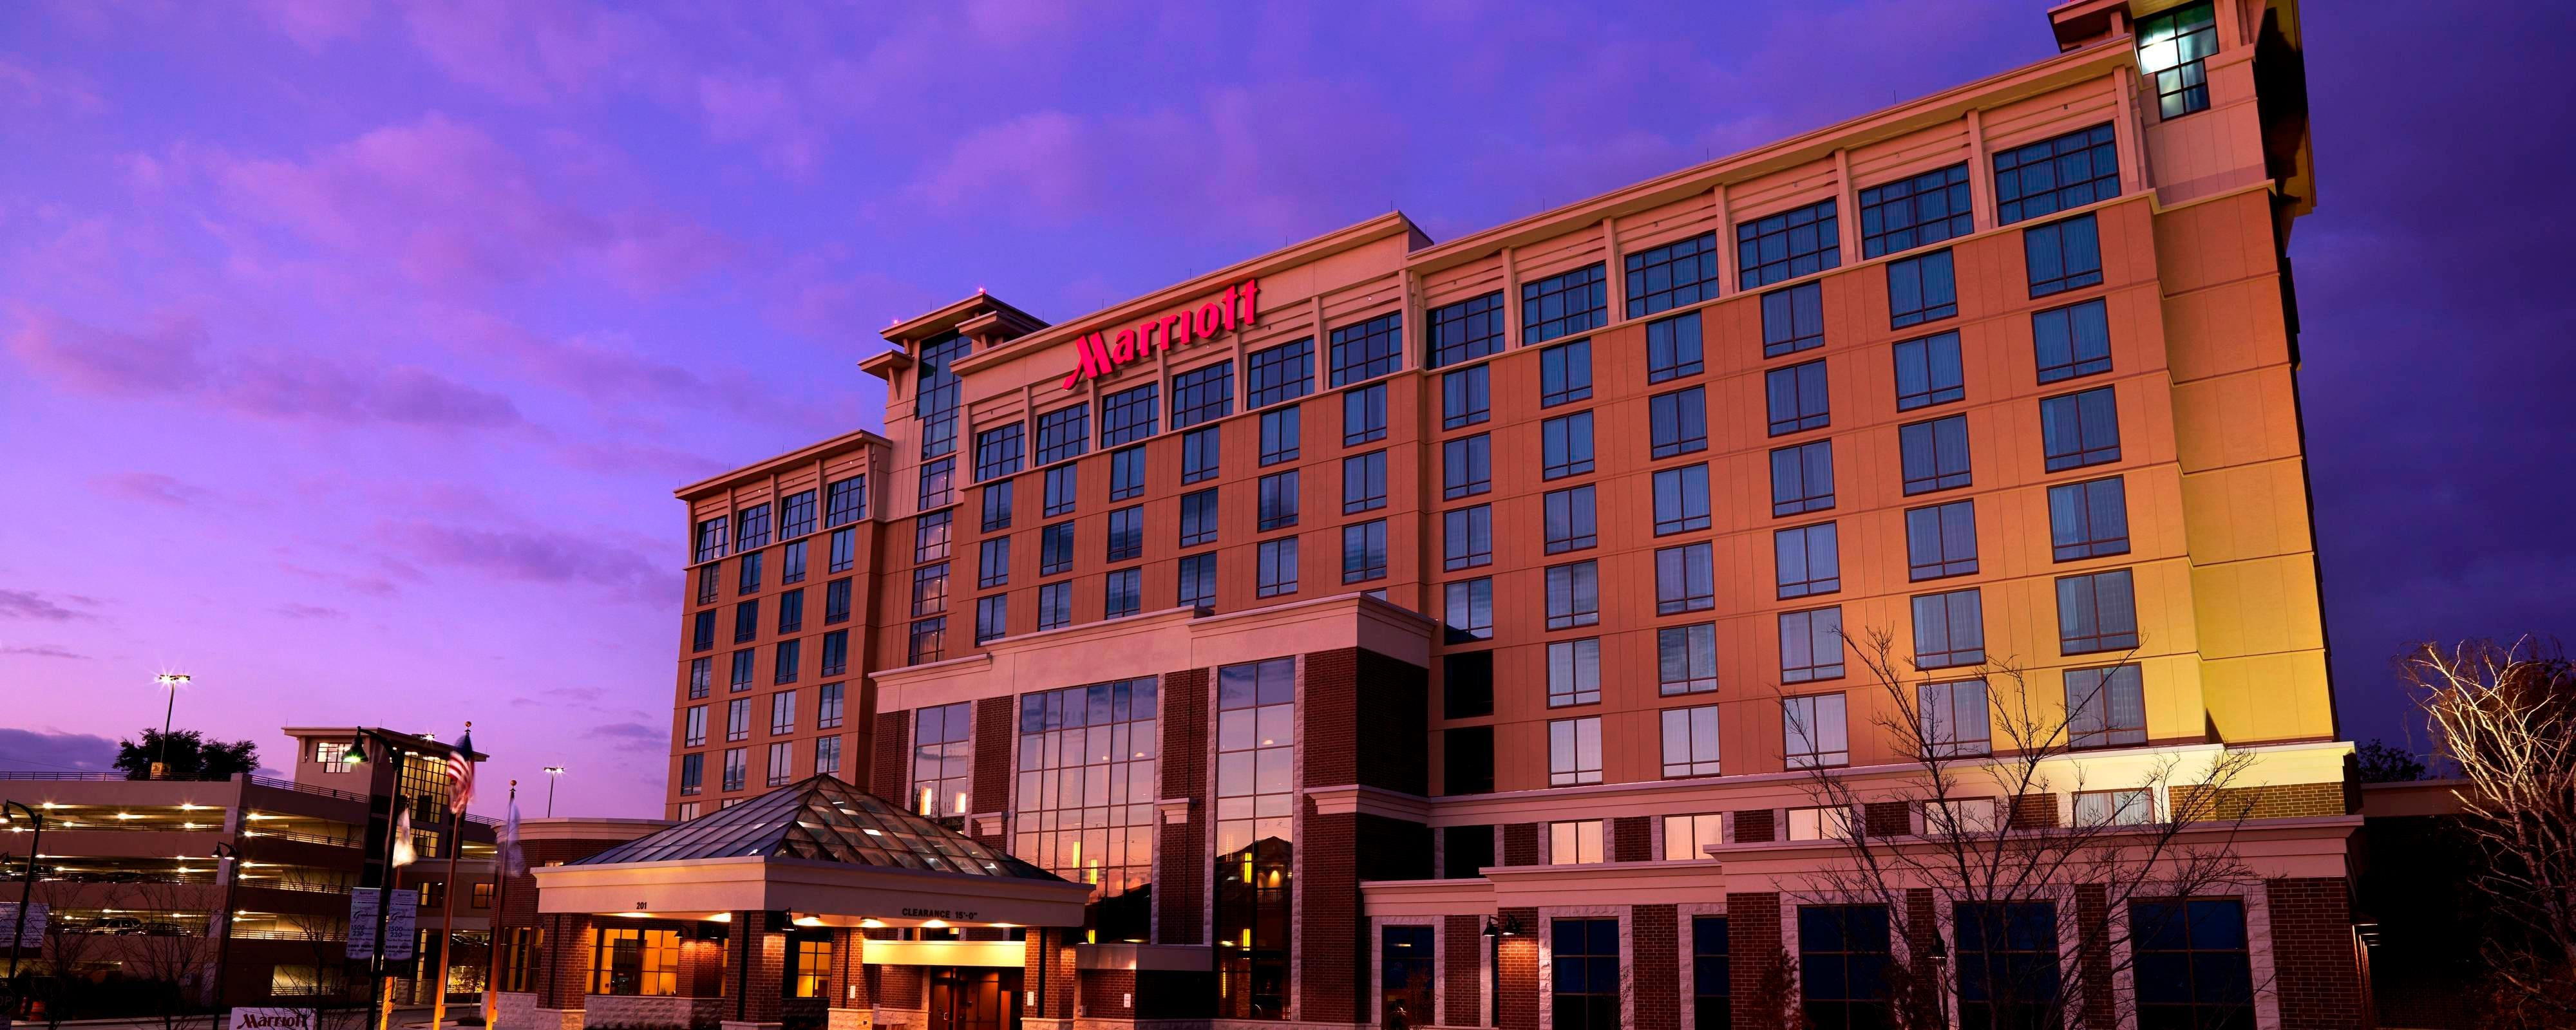 Hotels In Normal Il Bloomington Normal Marriott Hotel